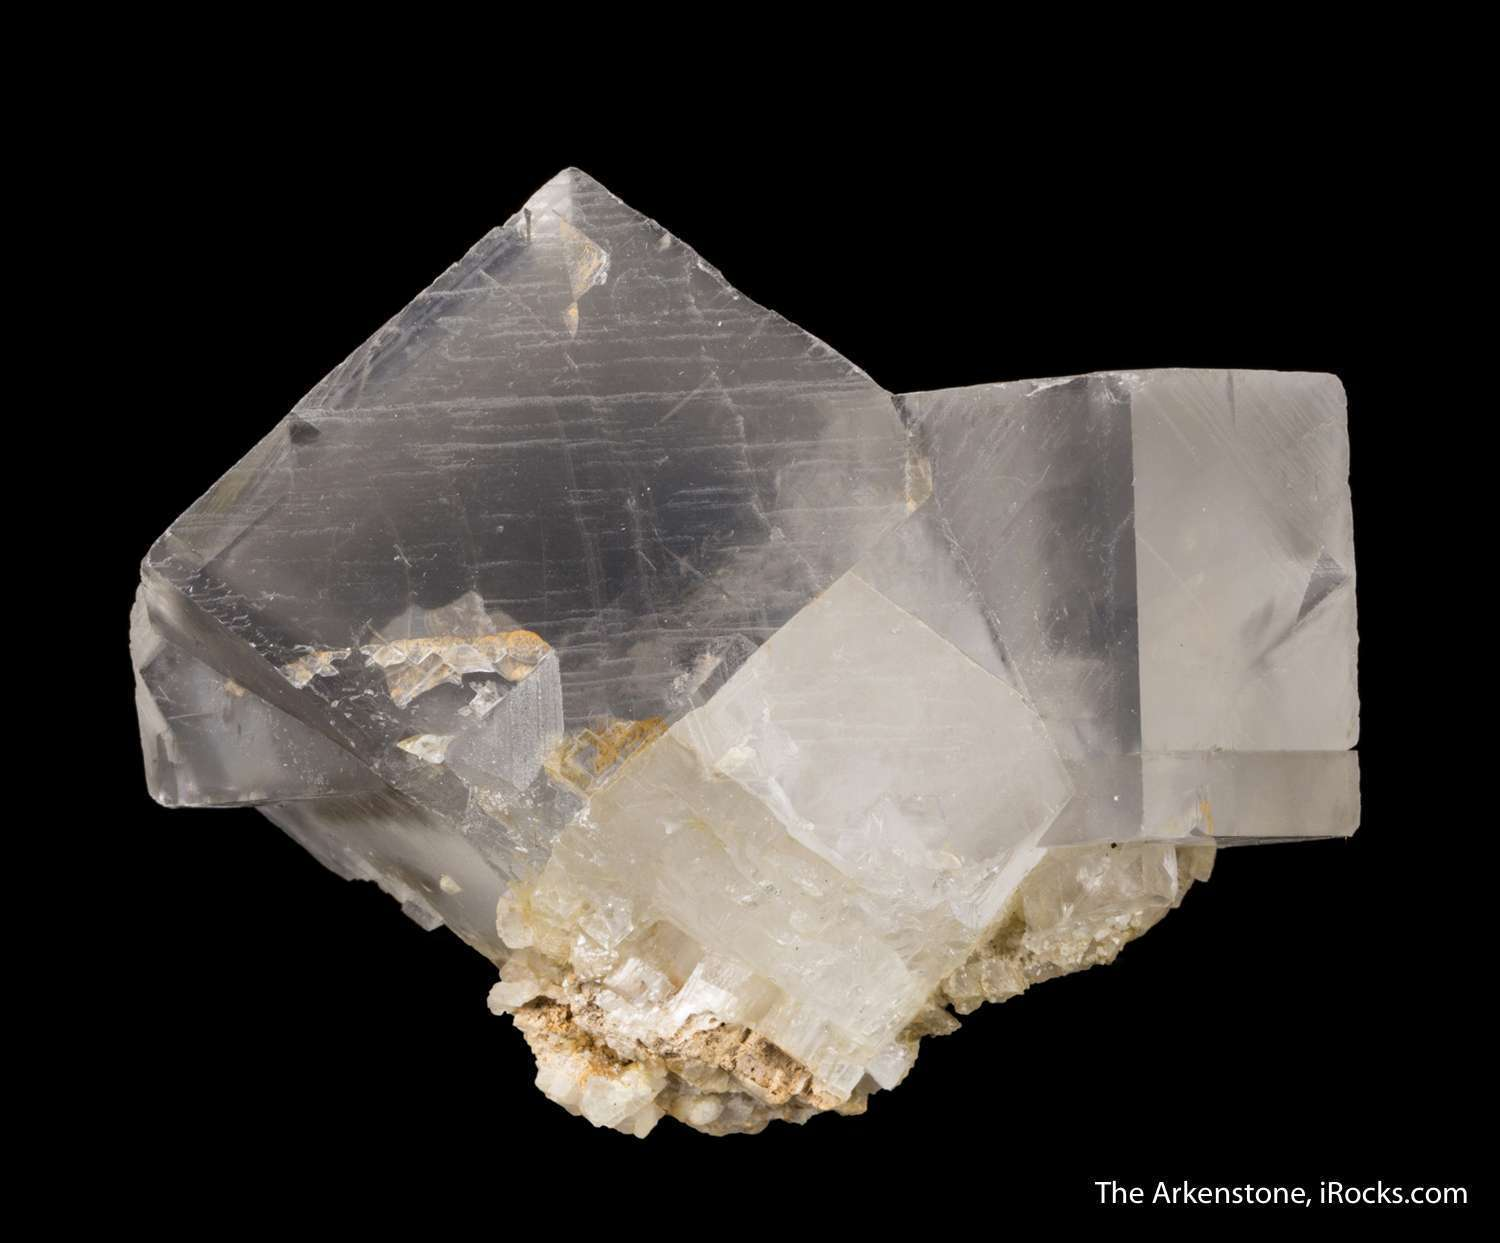 Sculpturally emplaced smaller dolomite crystals glassy gemmy